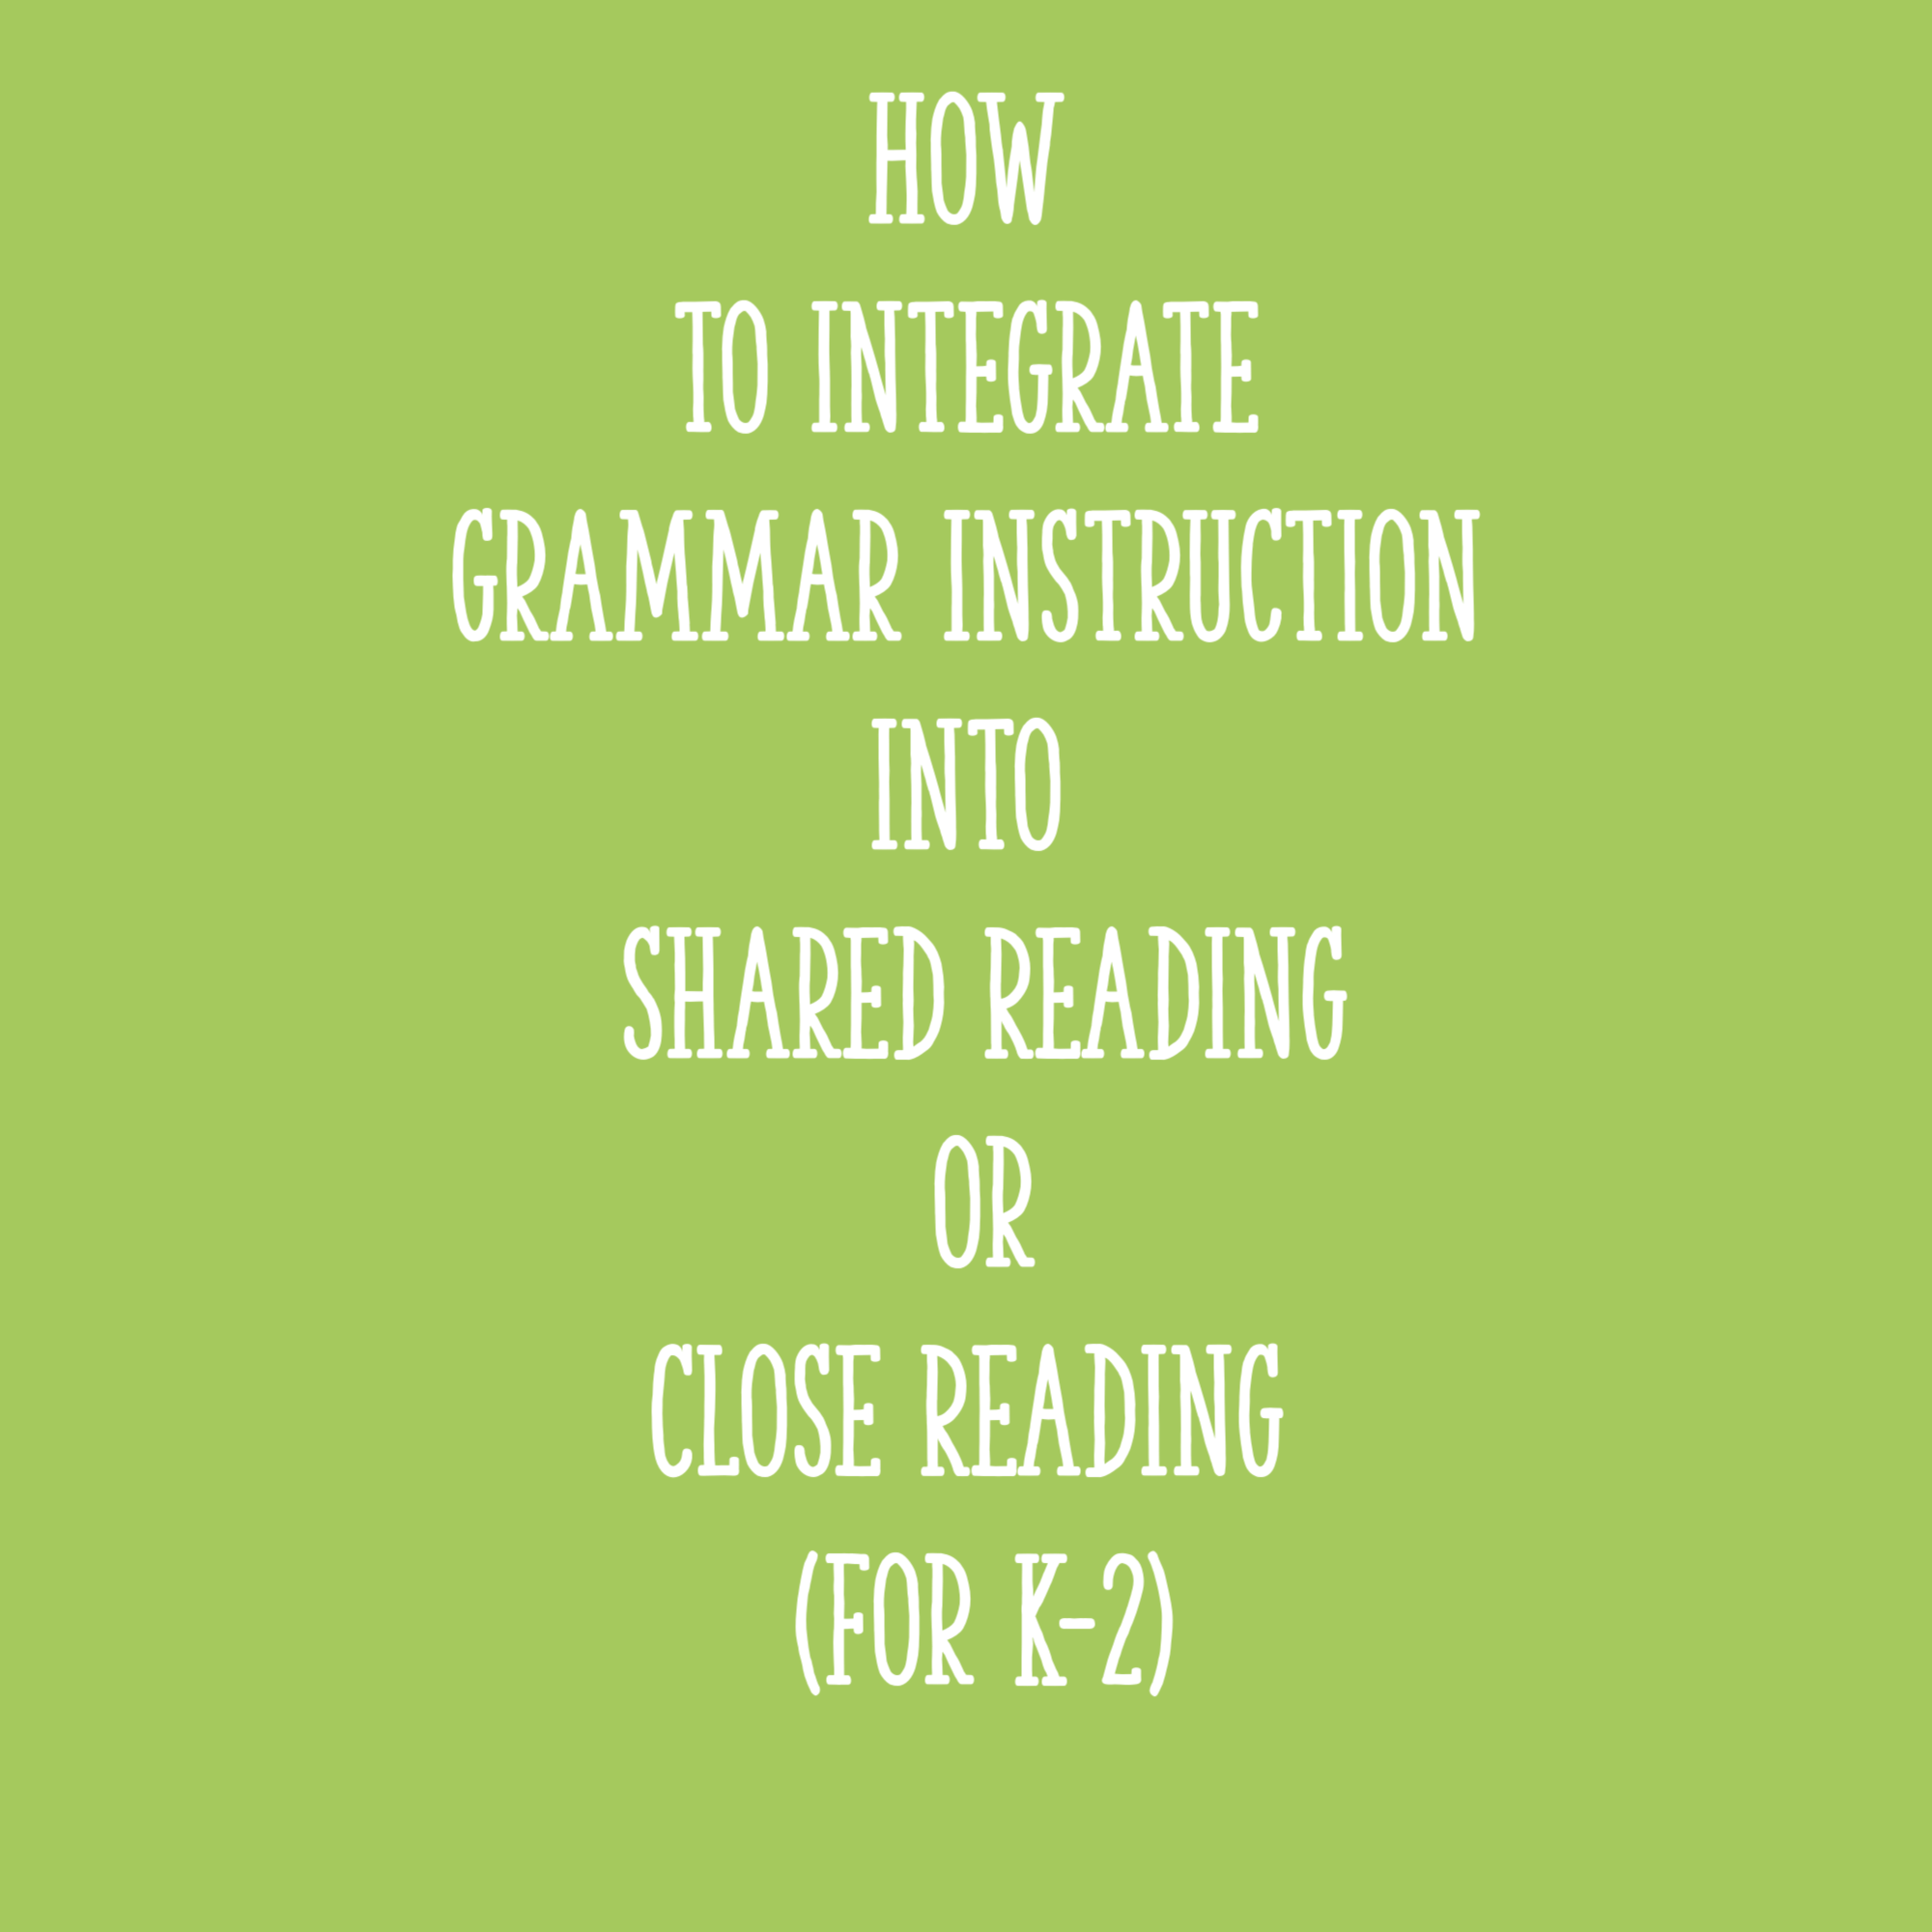 How To Integrate Grammar Instruction Into Shared Reading